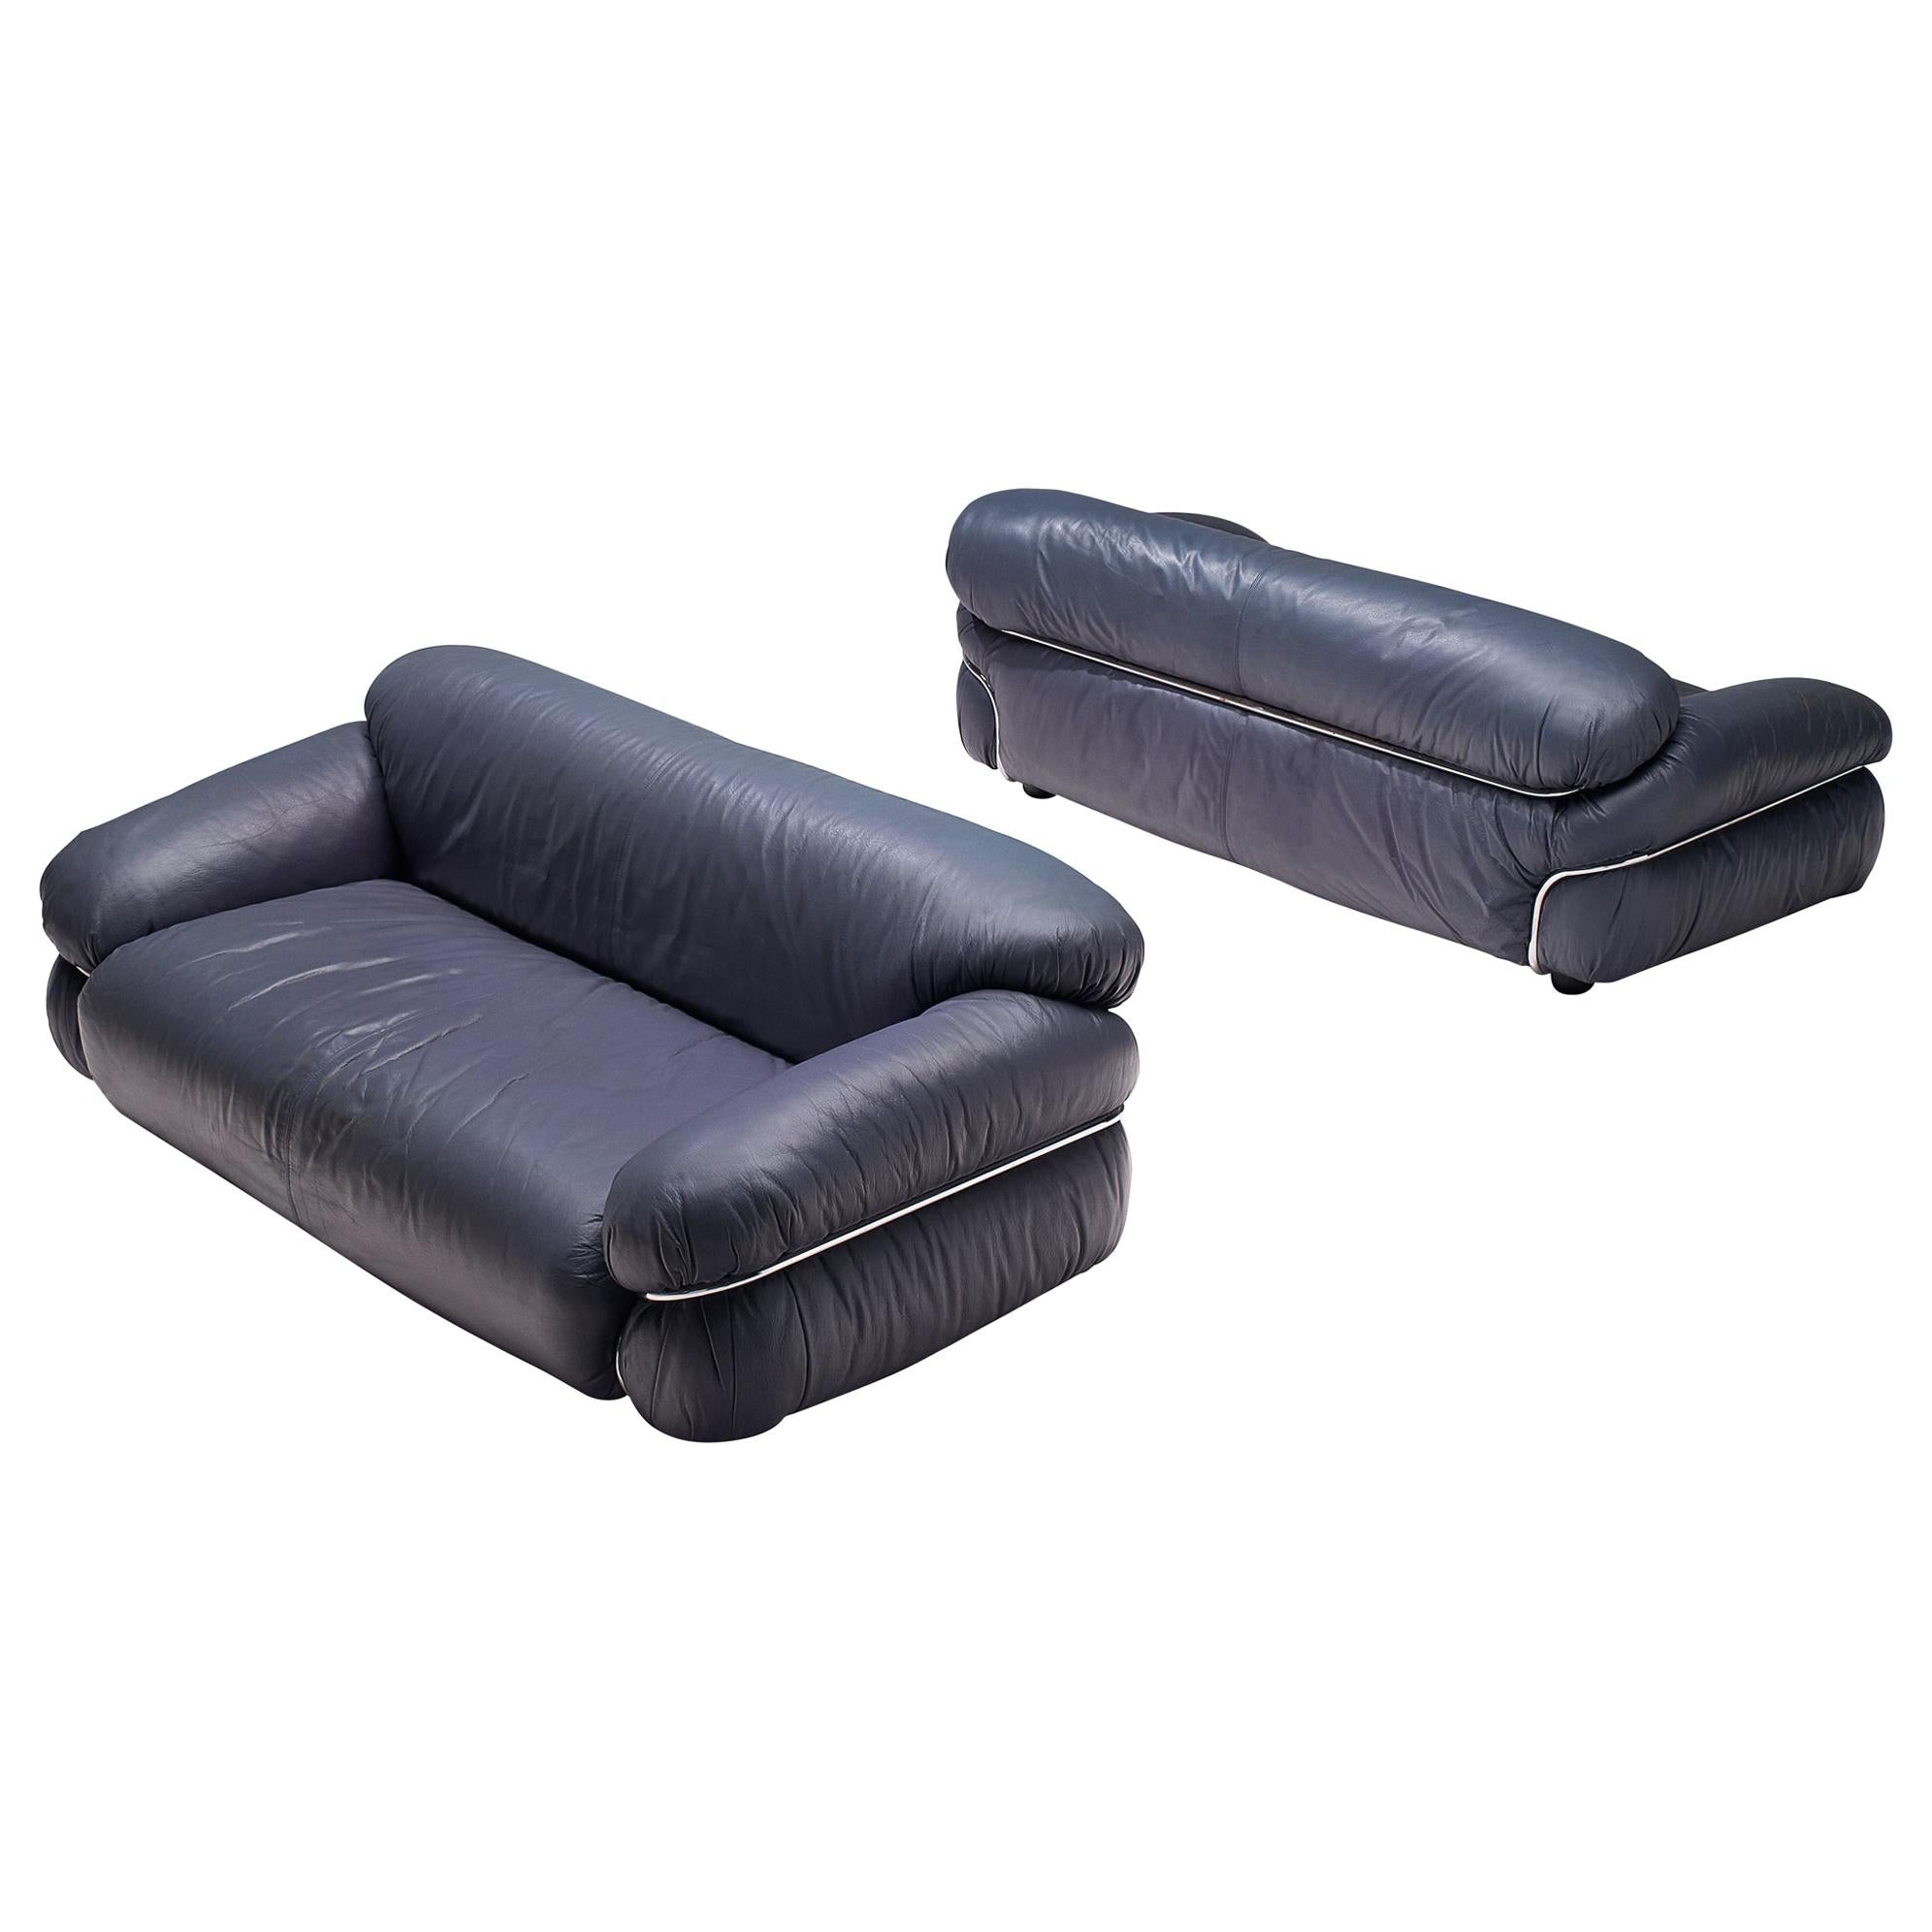 Gianfranco Frattini Pair of 'Sesann' Sofas in Blue Leather